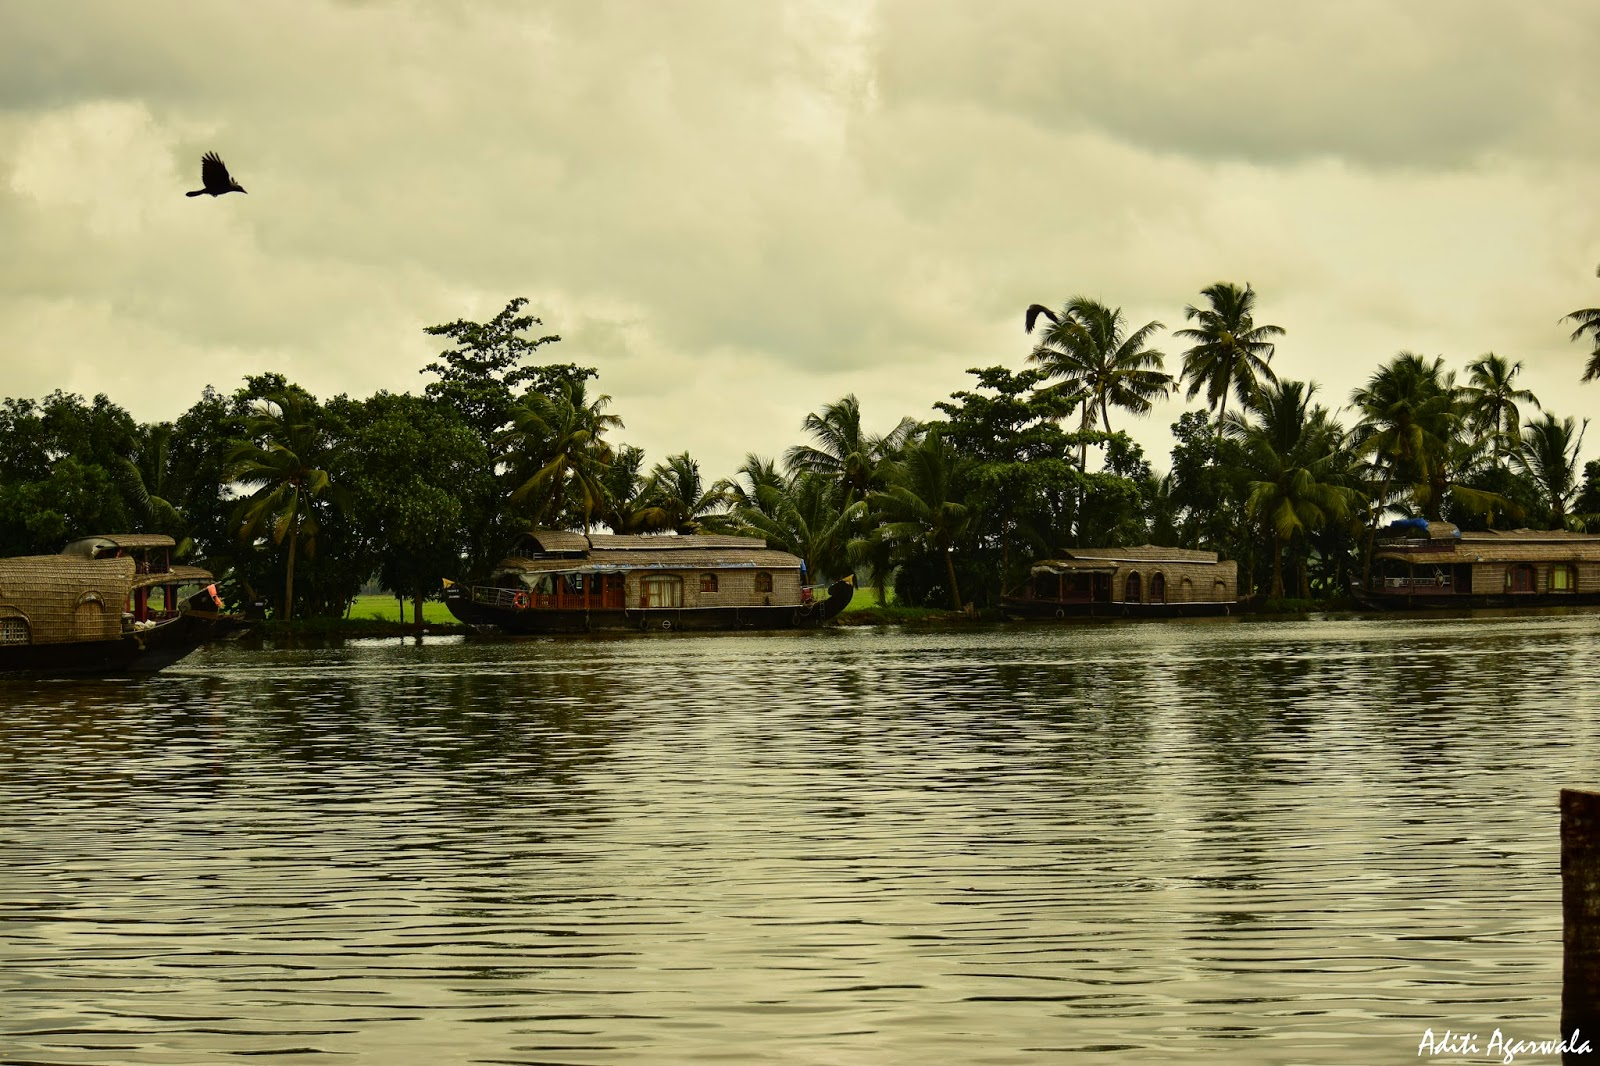 The houseboats in the backwaters of Allepey